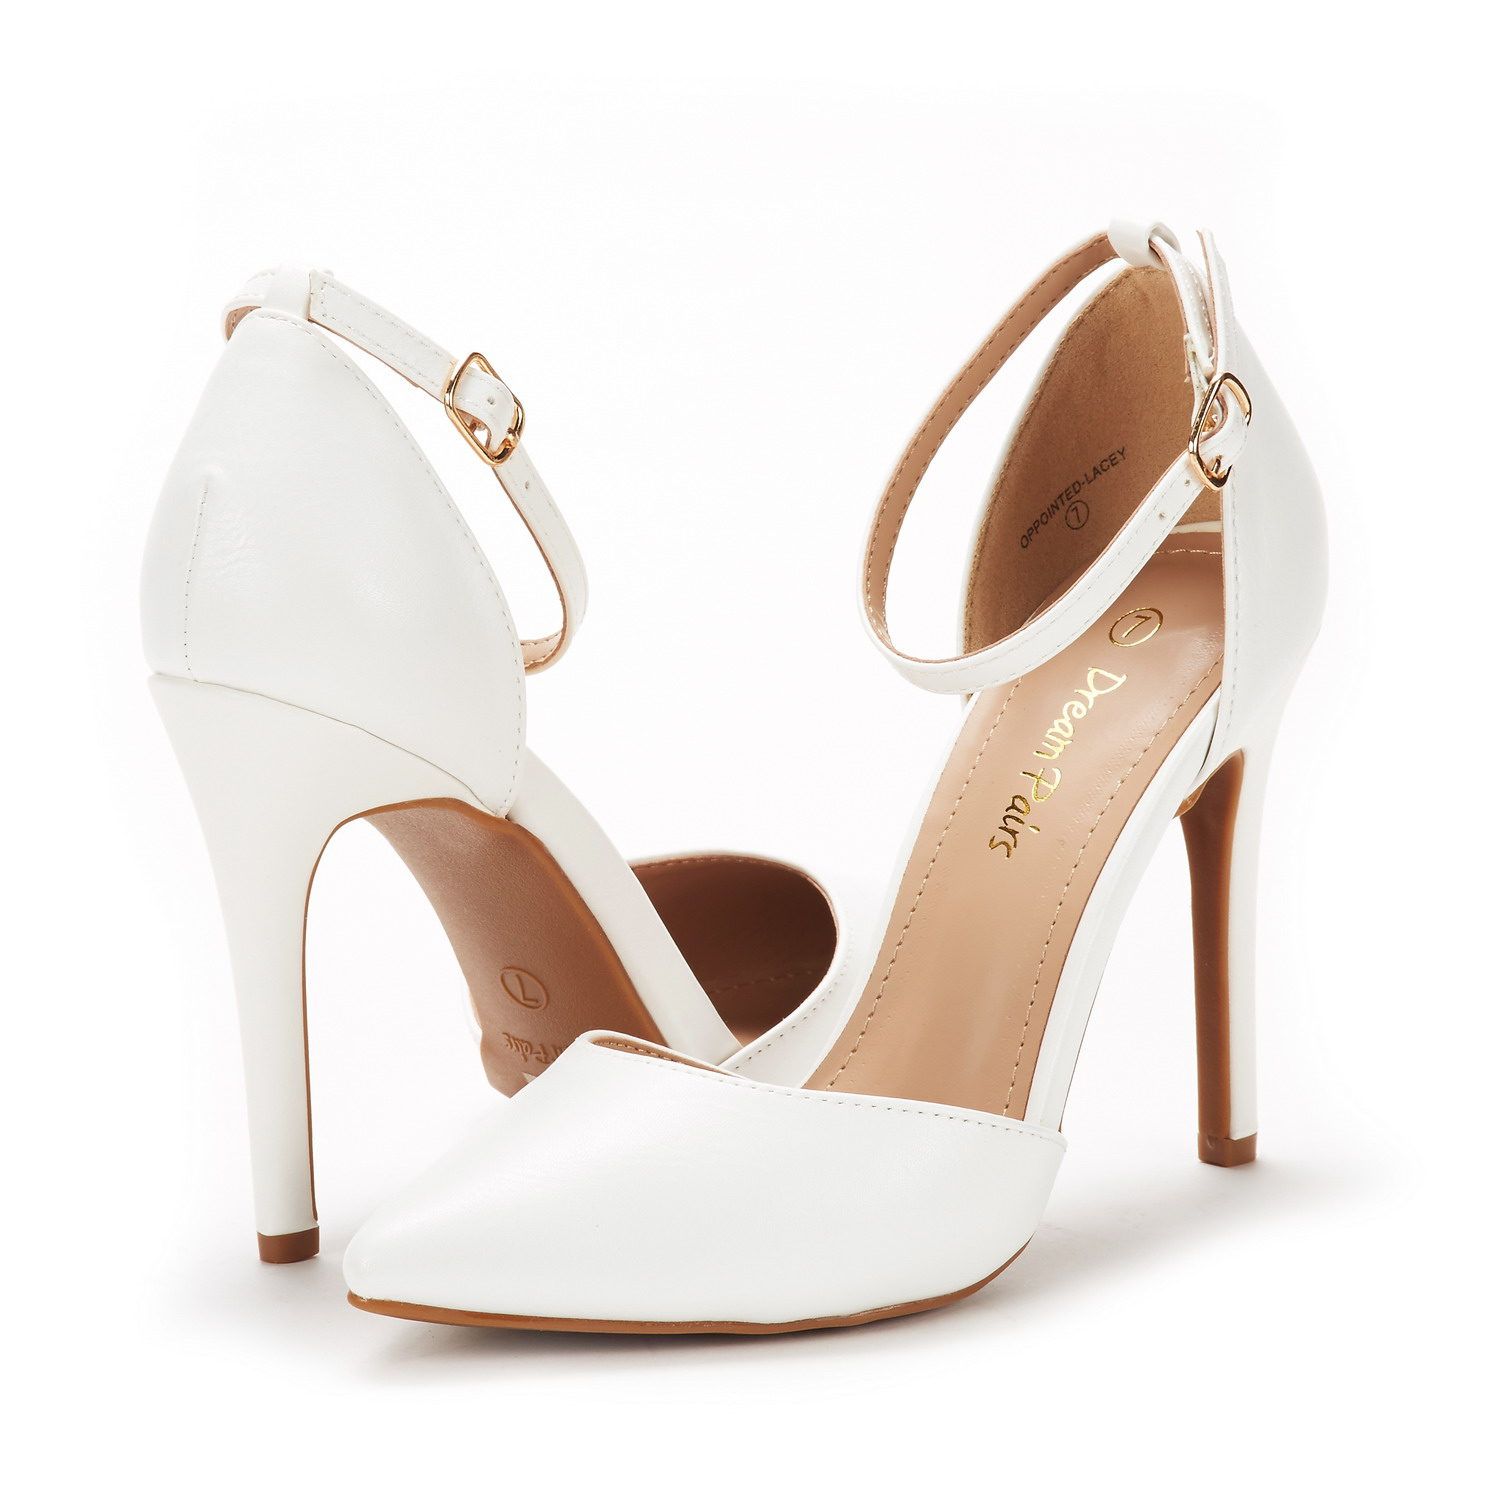 8d5d5902956 DREAM PAIRS Womens Oppointed-Lacey High Heeled Pointed Toe Wedding ...